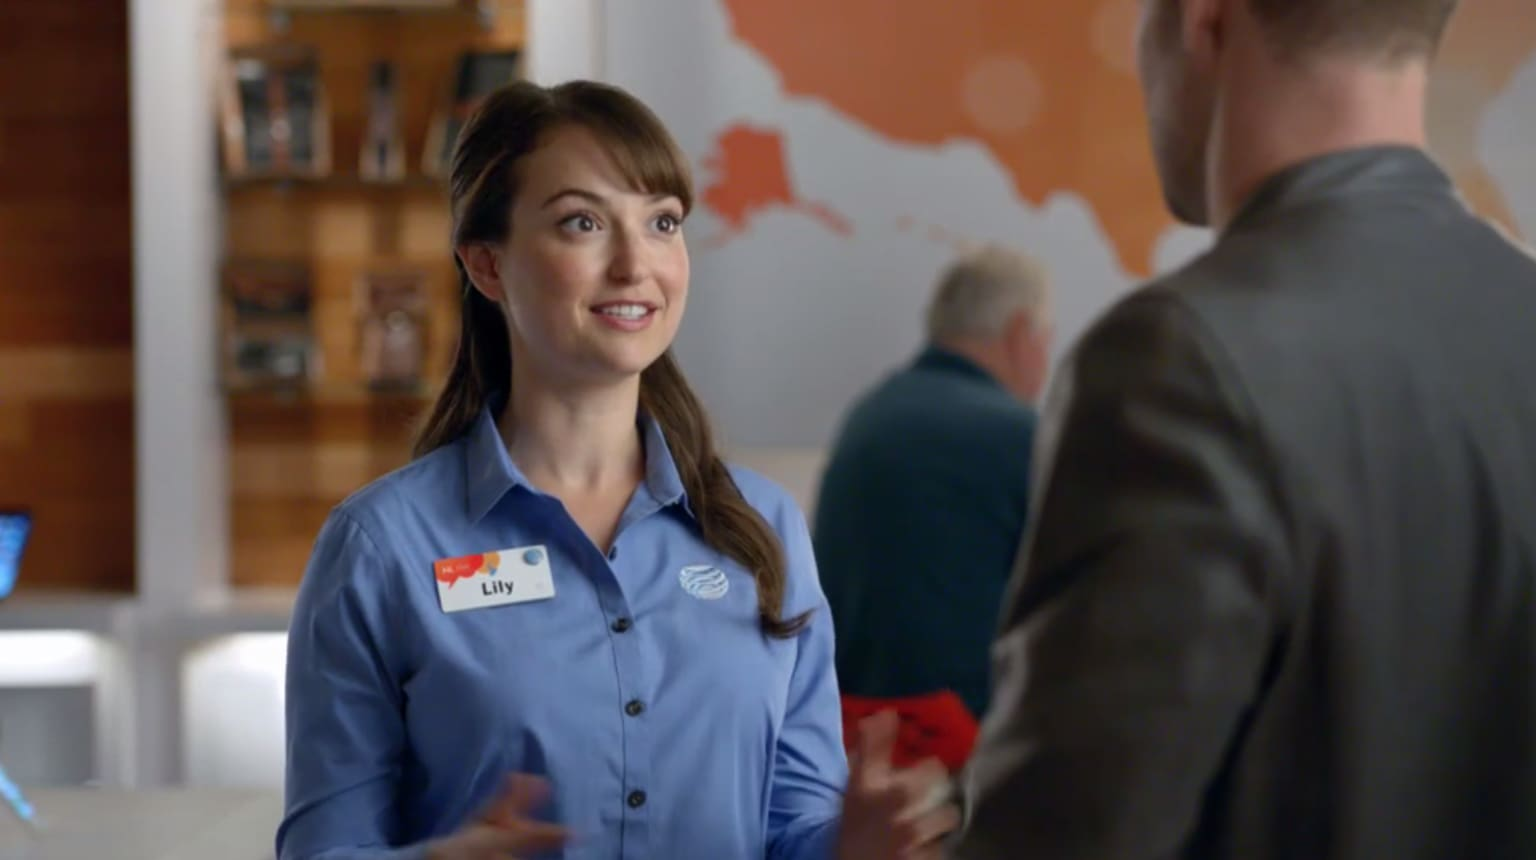 AT&T : Lilly & James